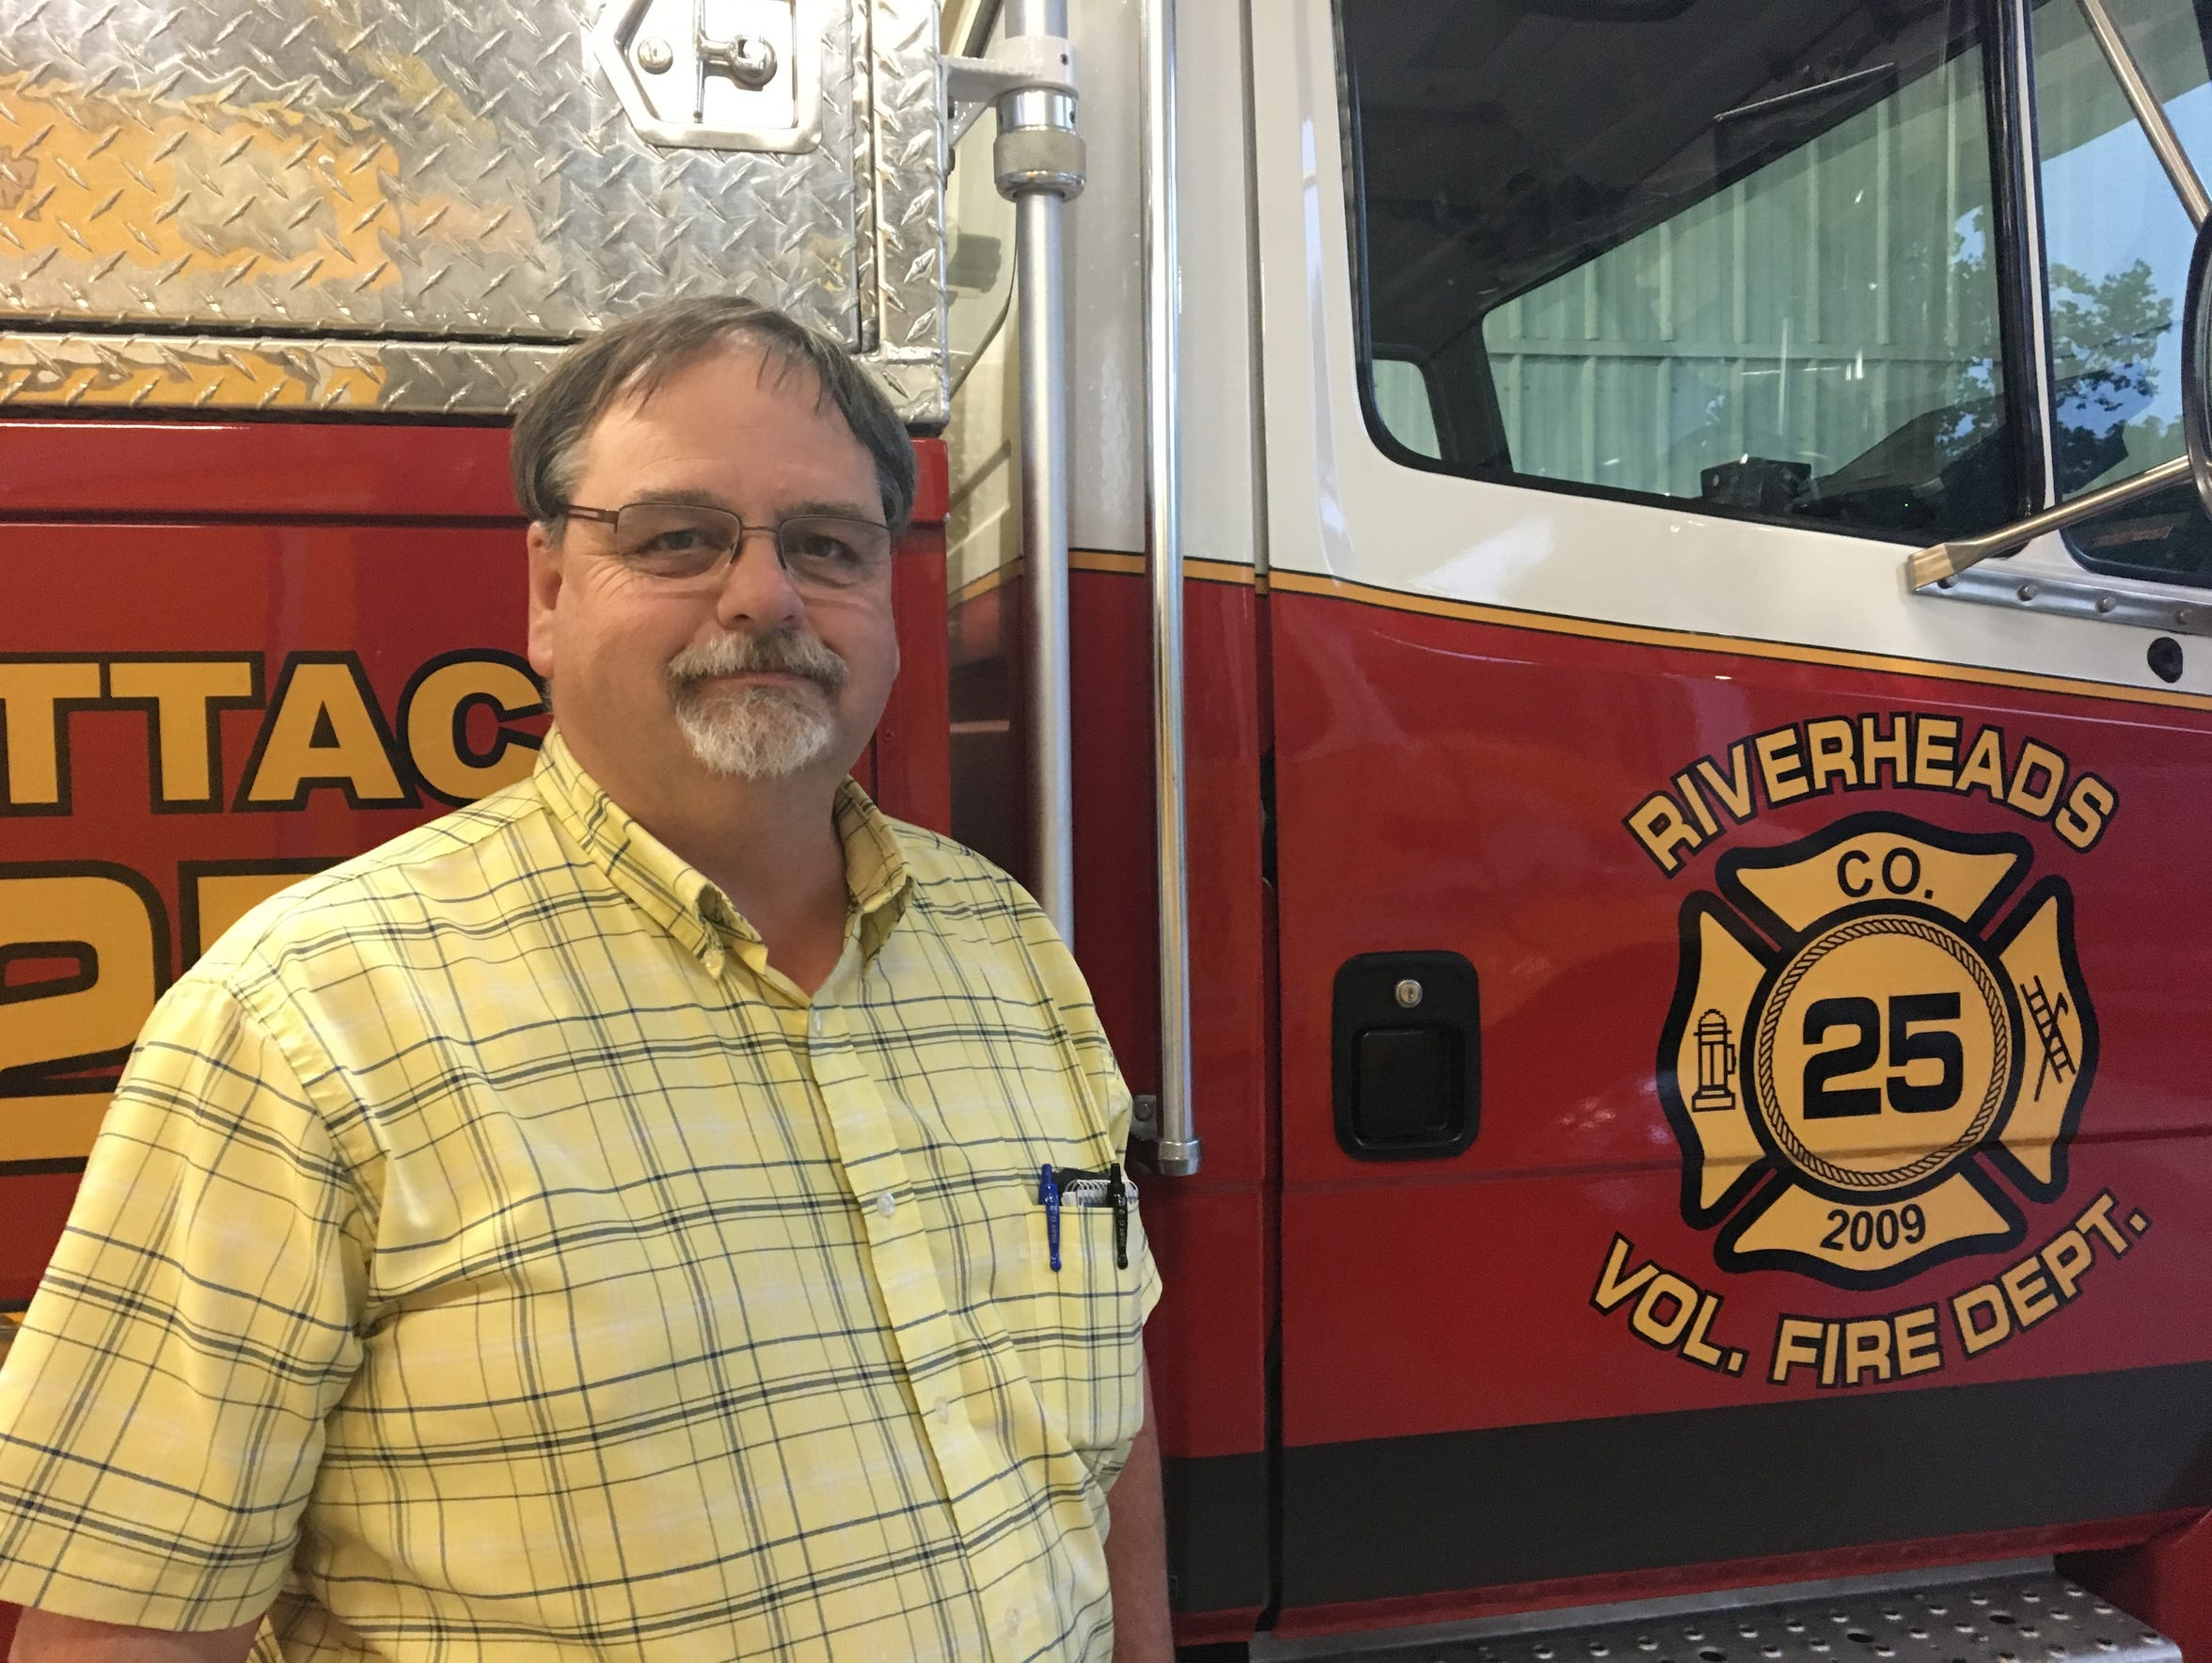 Riverheads Volunteer Fire Department Chief Barry Lotts